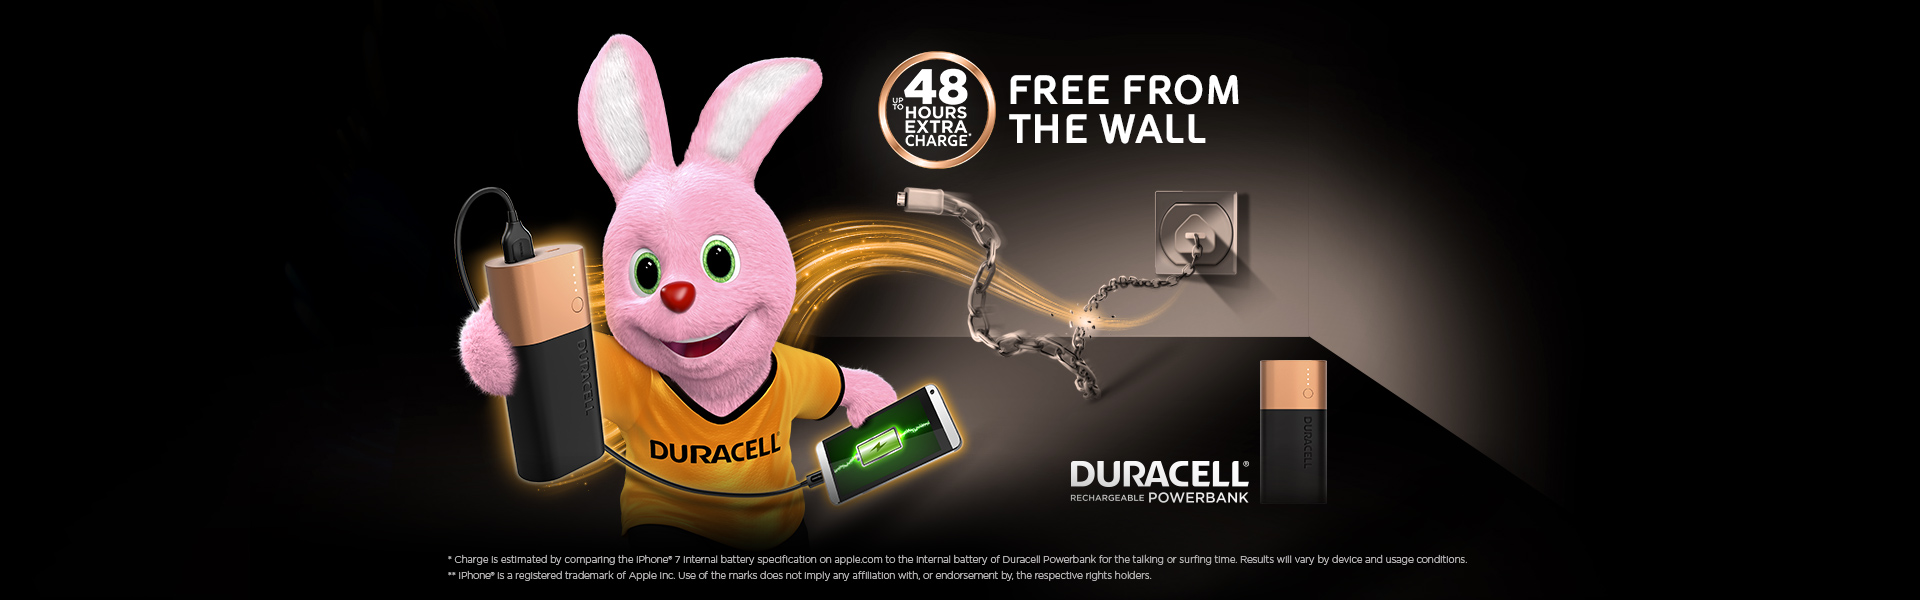 Duracell Powerbank 6700 Mah Charger For Smartphones Power Banks Are Many Types Of Hearing Aids Which Vary In Size And Circuitry Responsible Battery Use Care Recycling